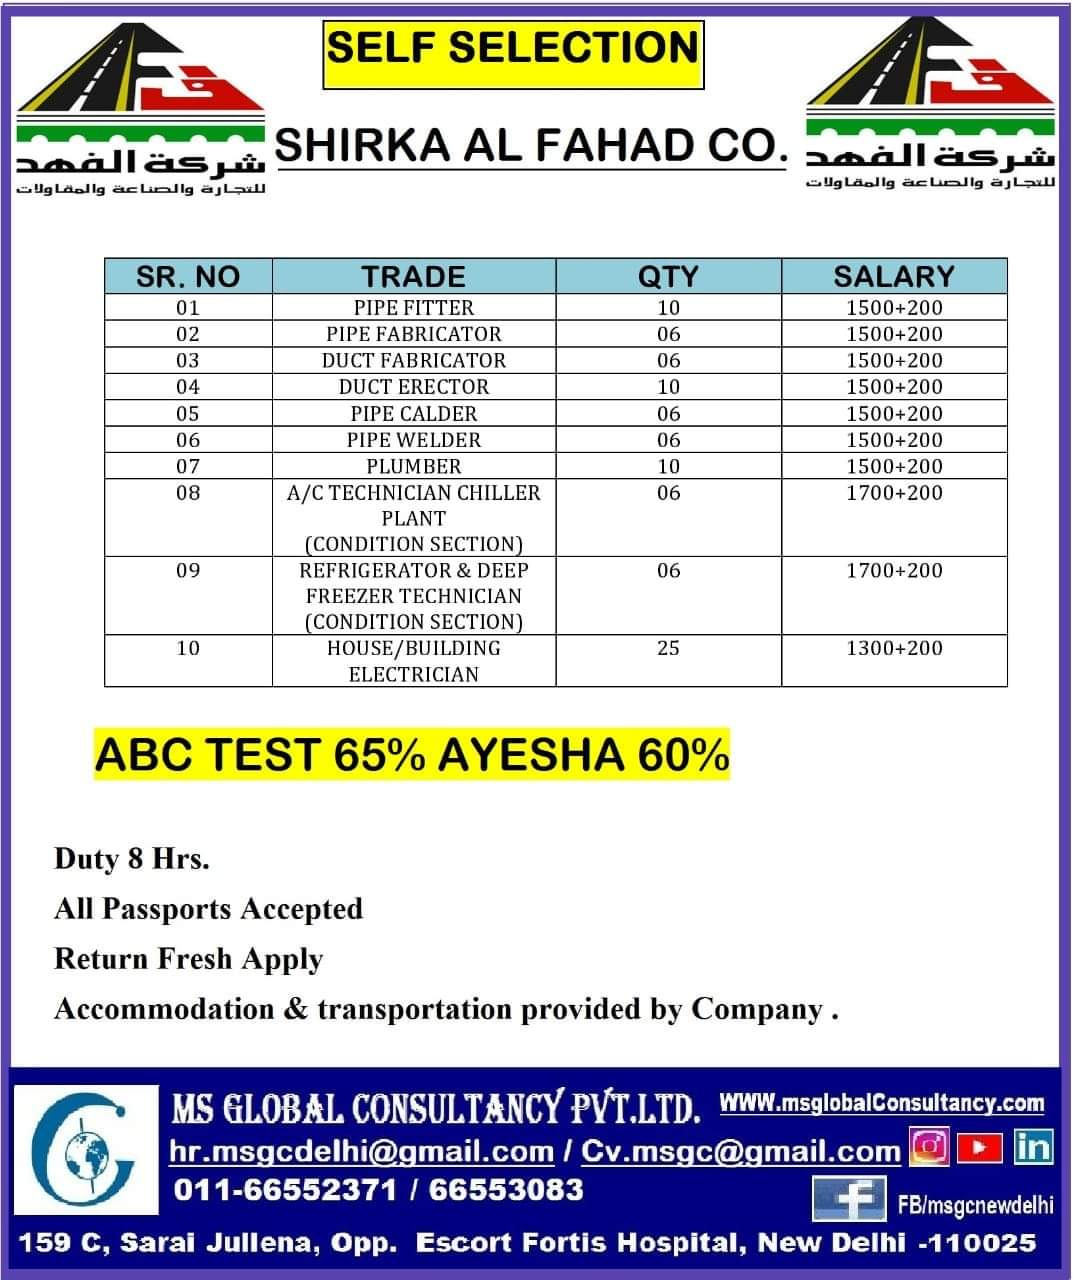 SHIRKA AL FAHAD CO JOB OPENINGS